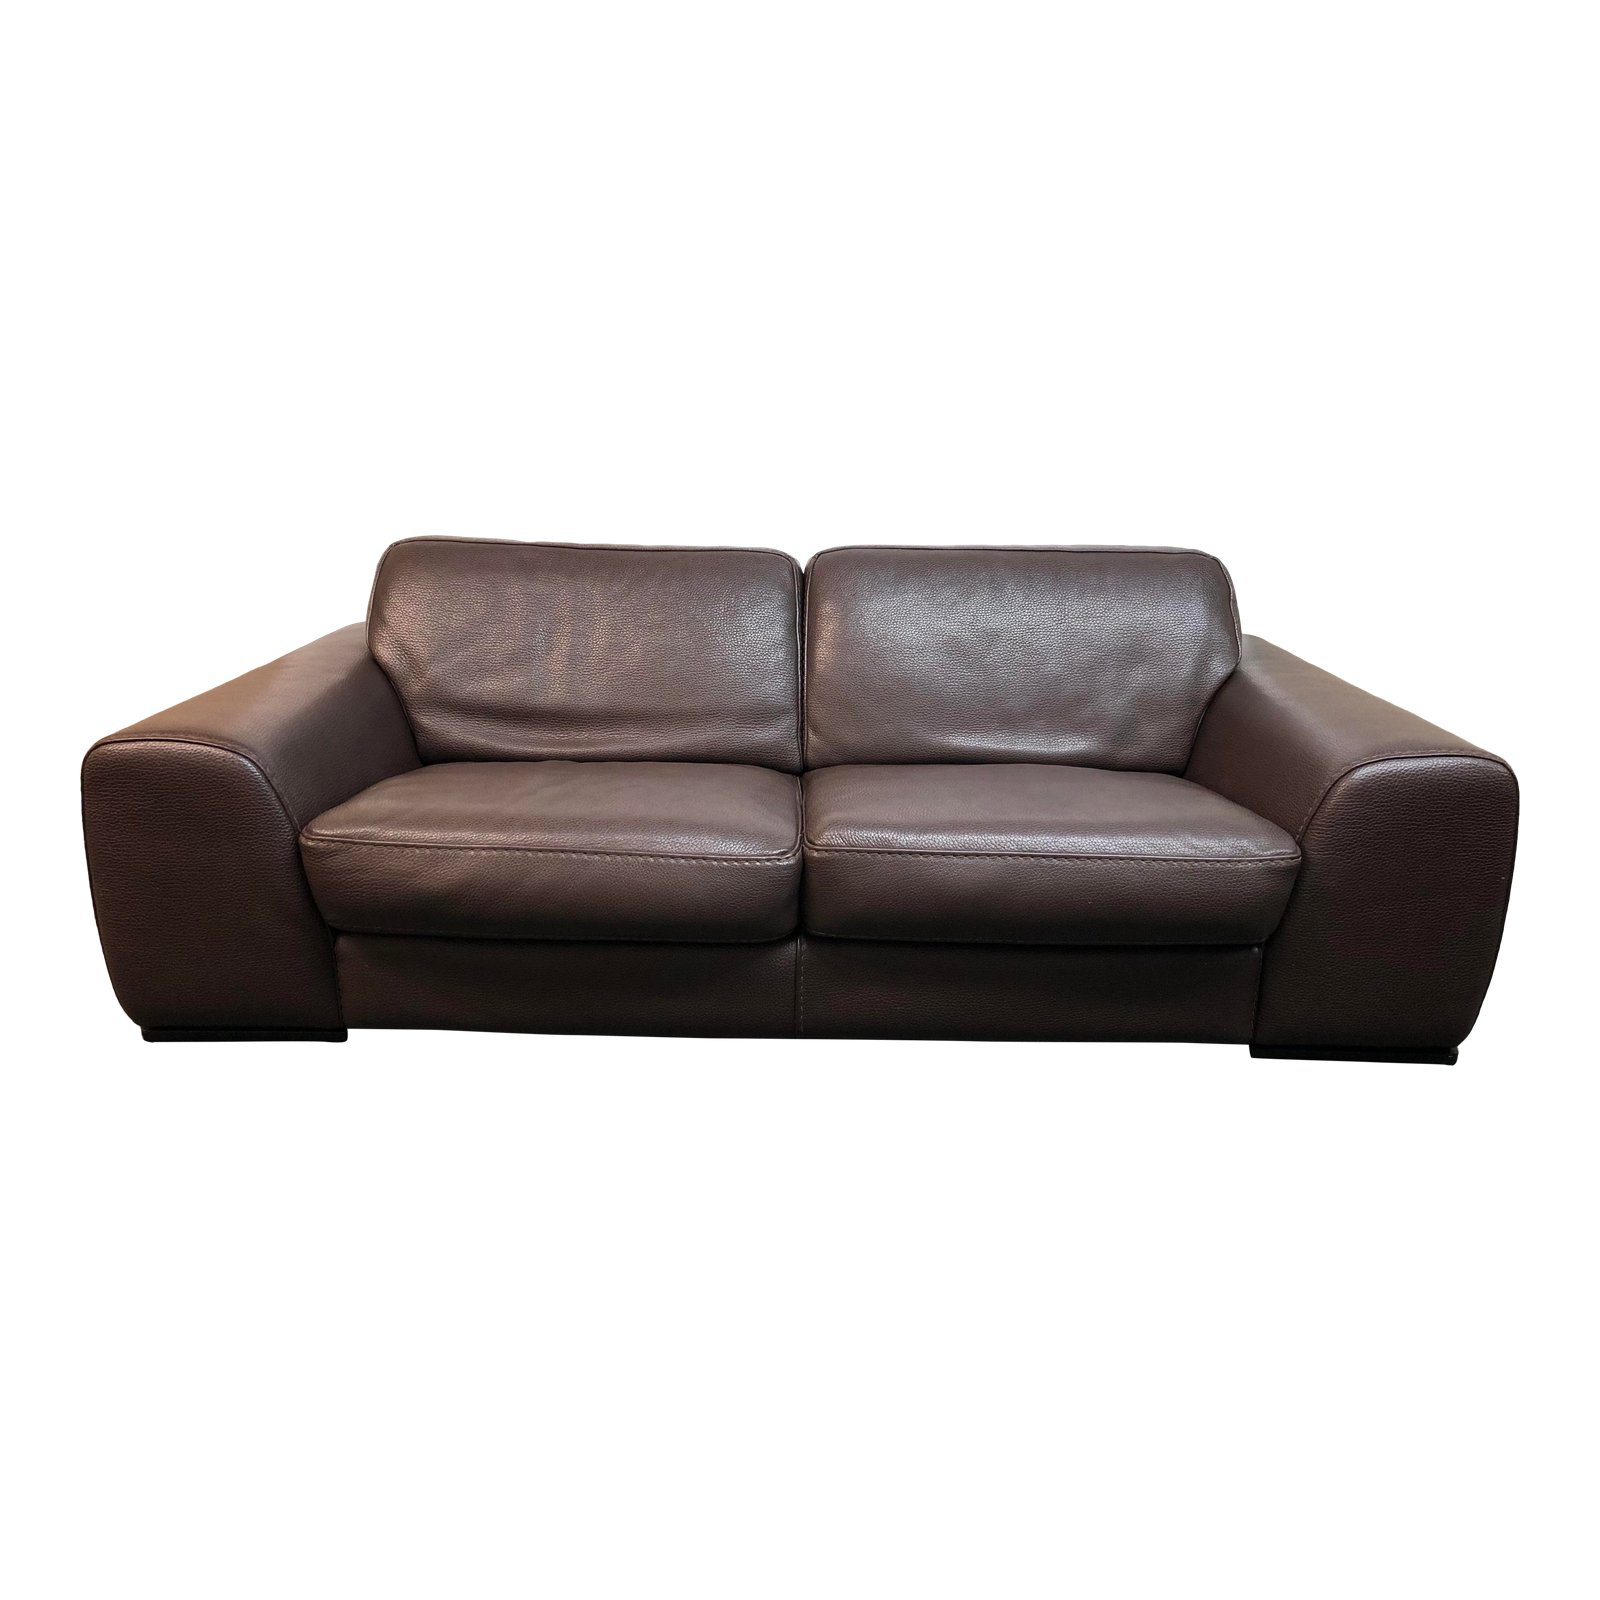 Design Plus Gallery Presents Contemporary Roche Bobois Leather Sofa This Beautiful Three Seat Couch Is